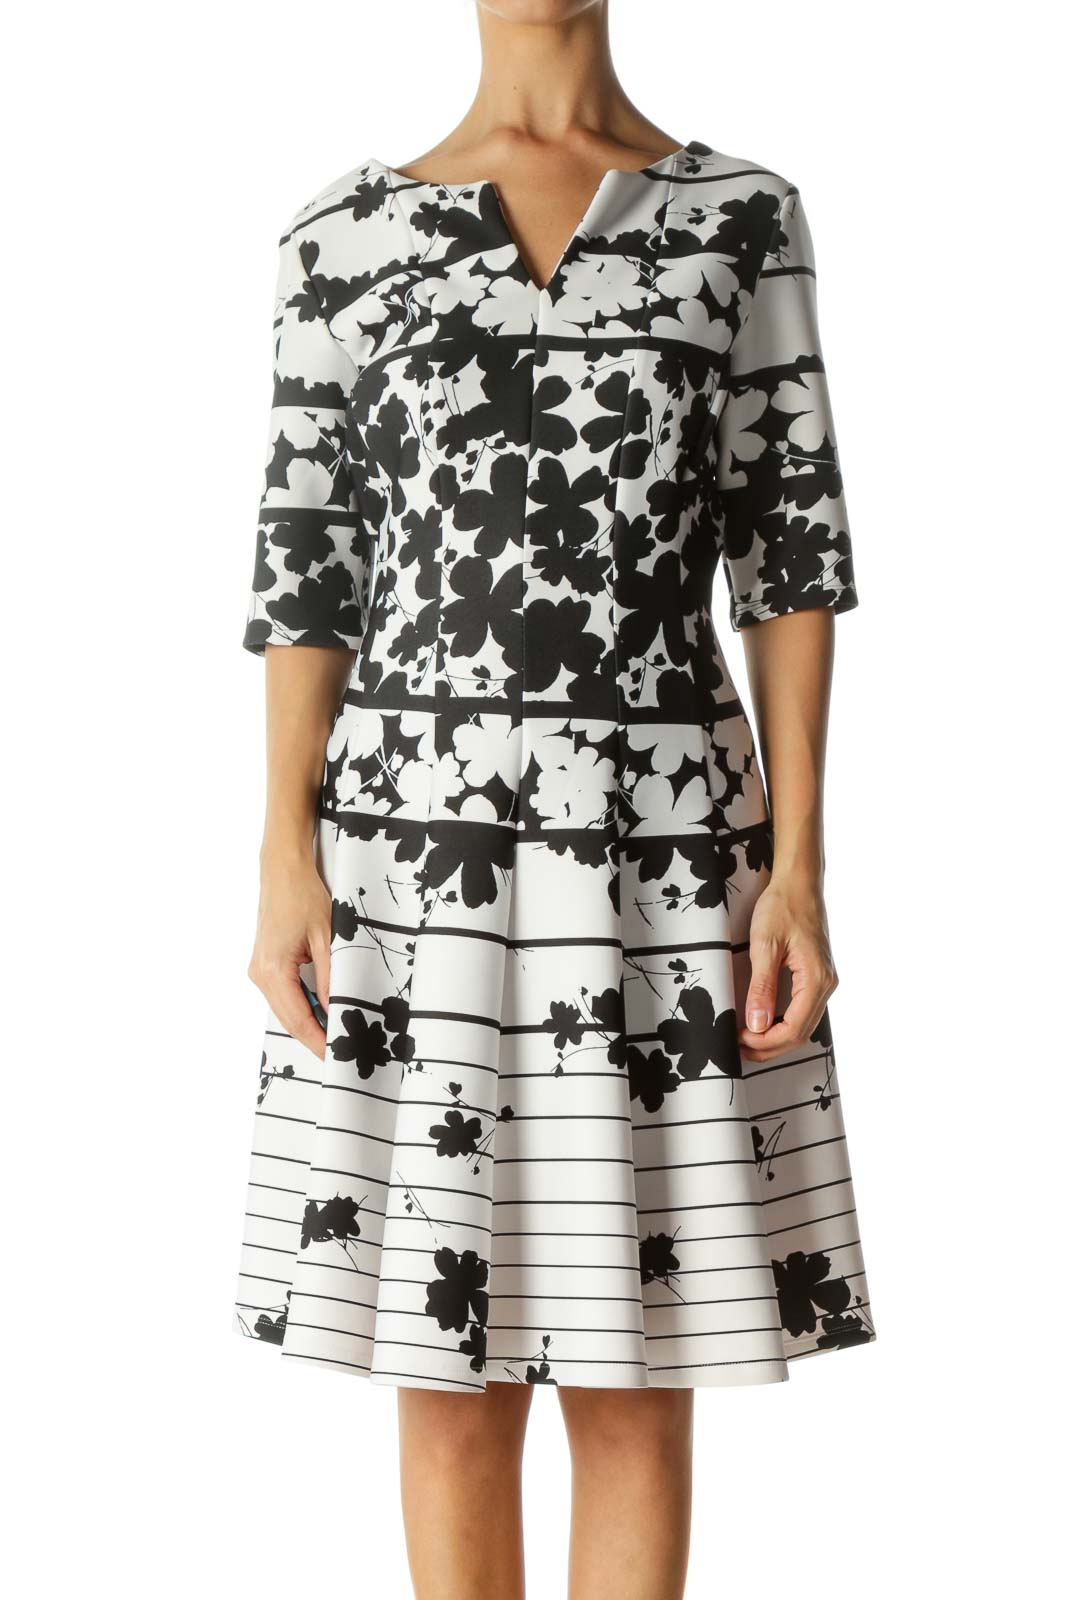 Black and White Floral Print Work Dress